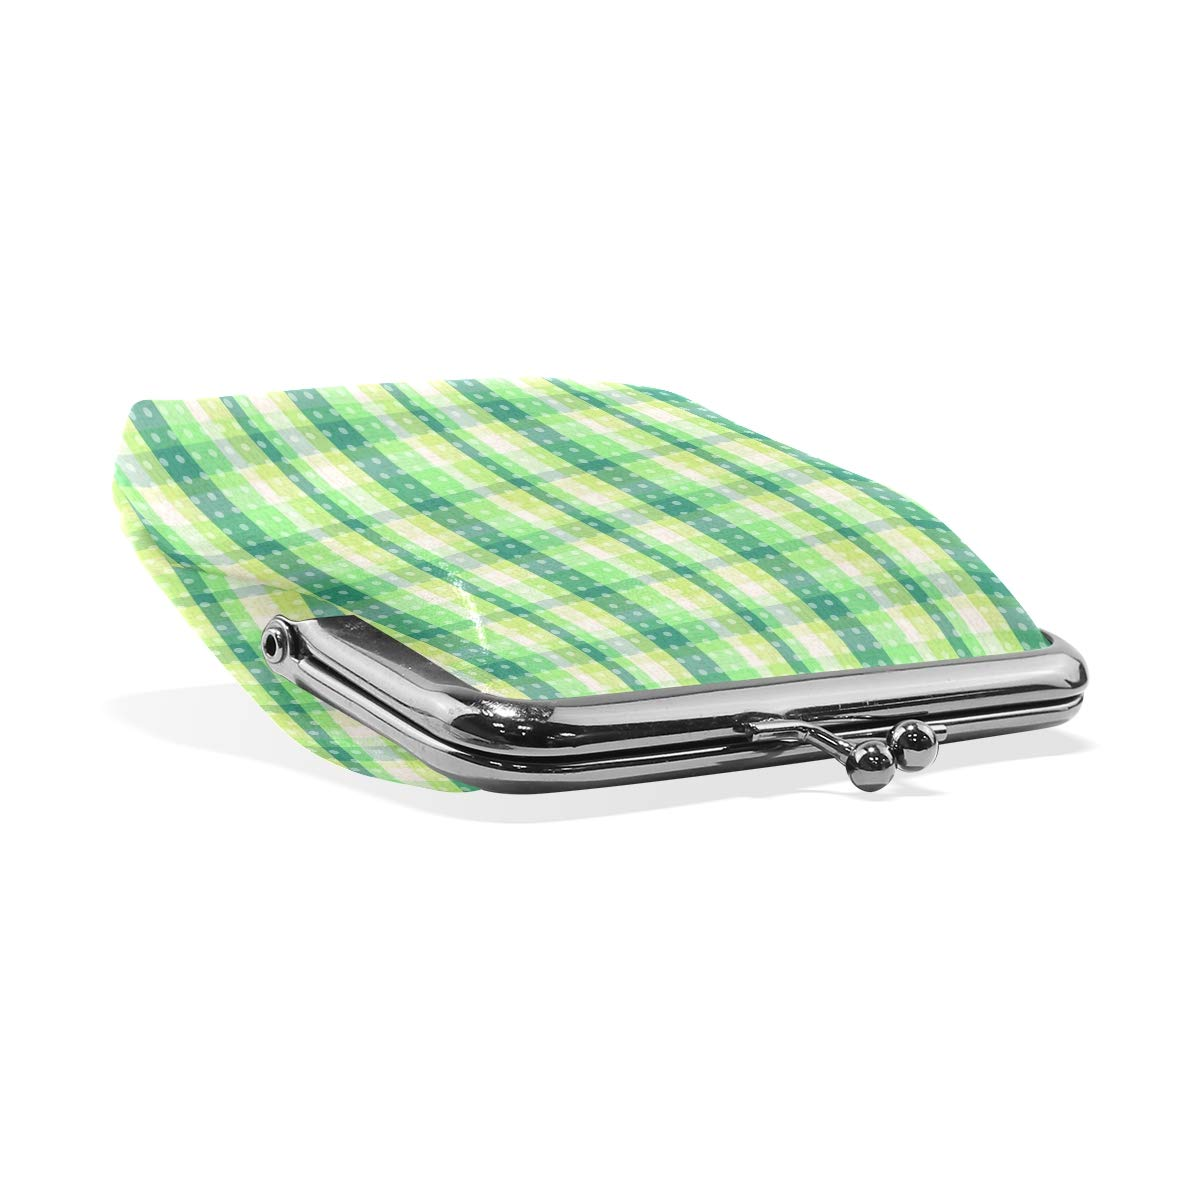 Exquisite Buckle Coin Purses Green Plaid Vector Mini Wallet Key Card Holder Purse for Women